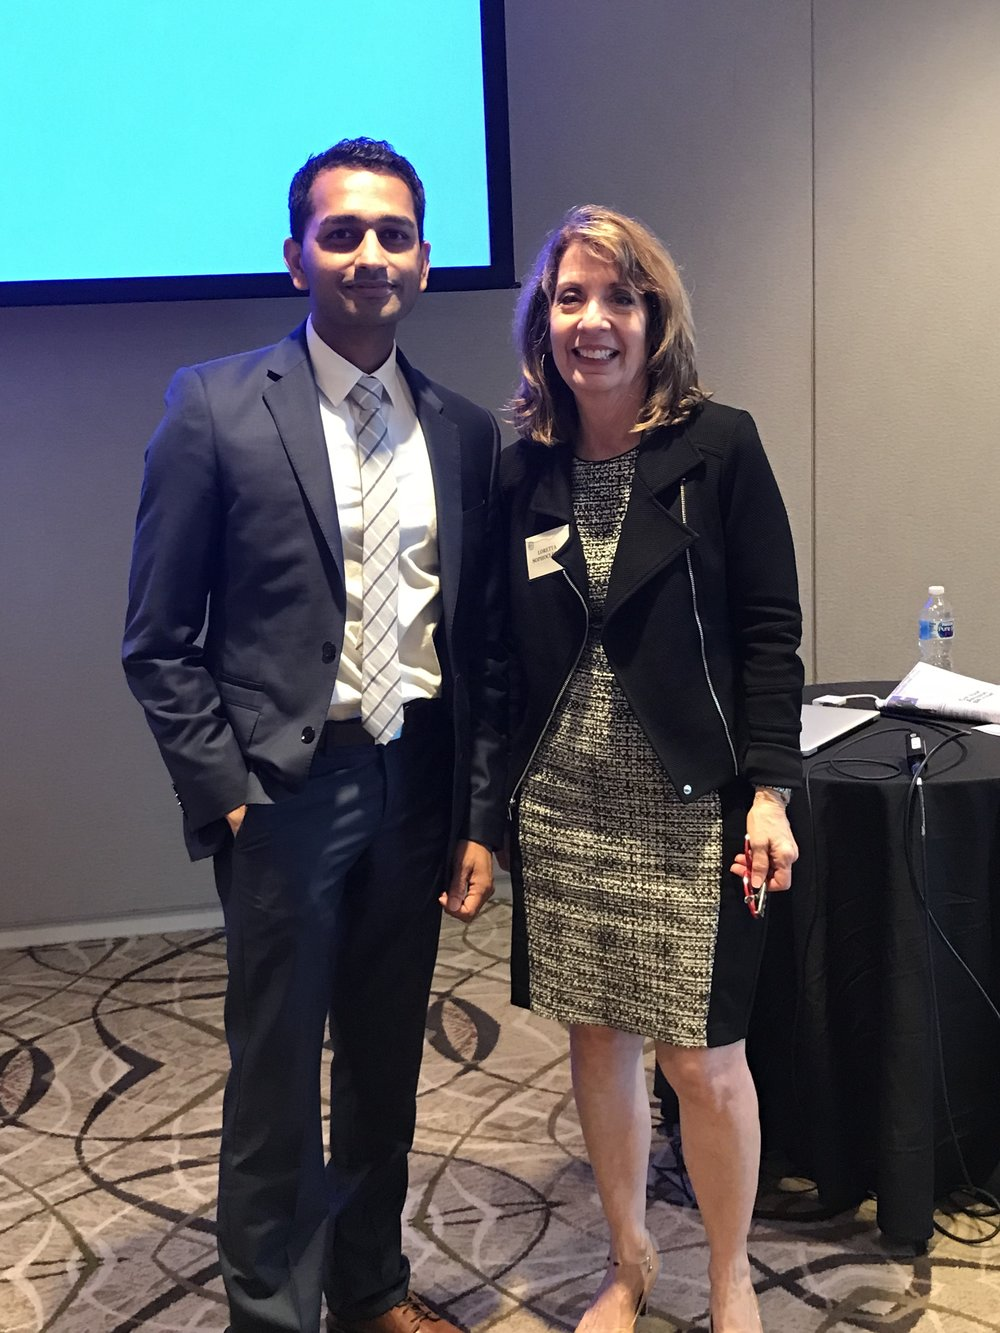 jay patel - Special agent, federal bureau of investigation with Loretta Sophocleous